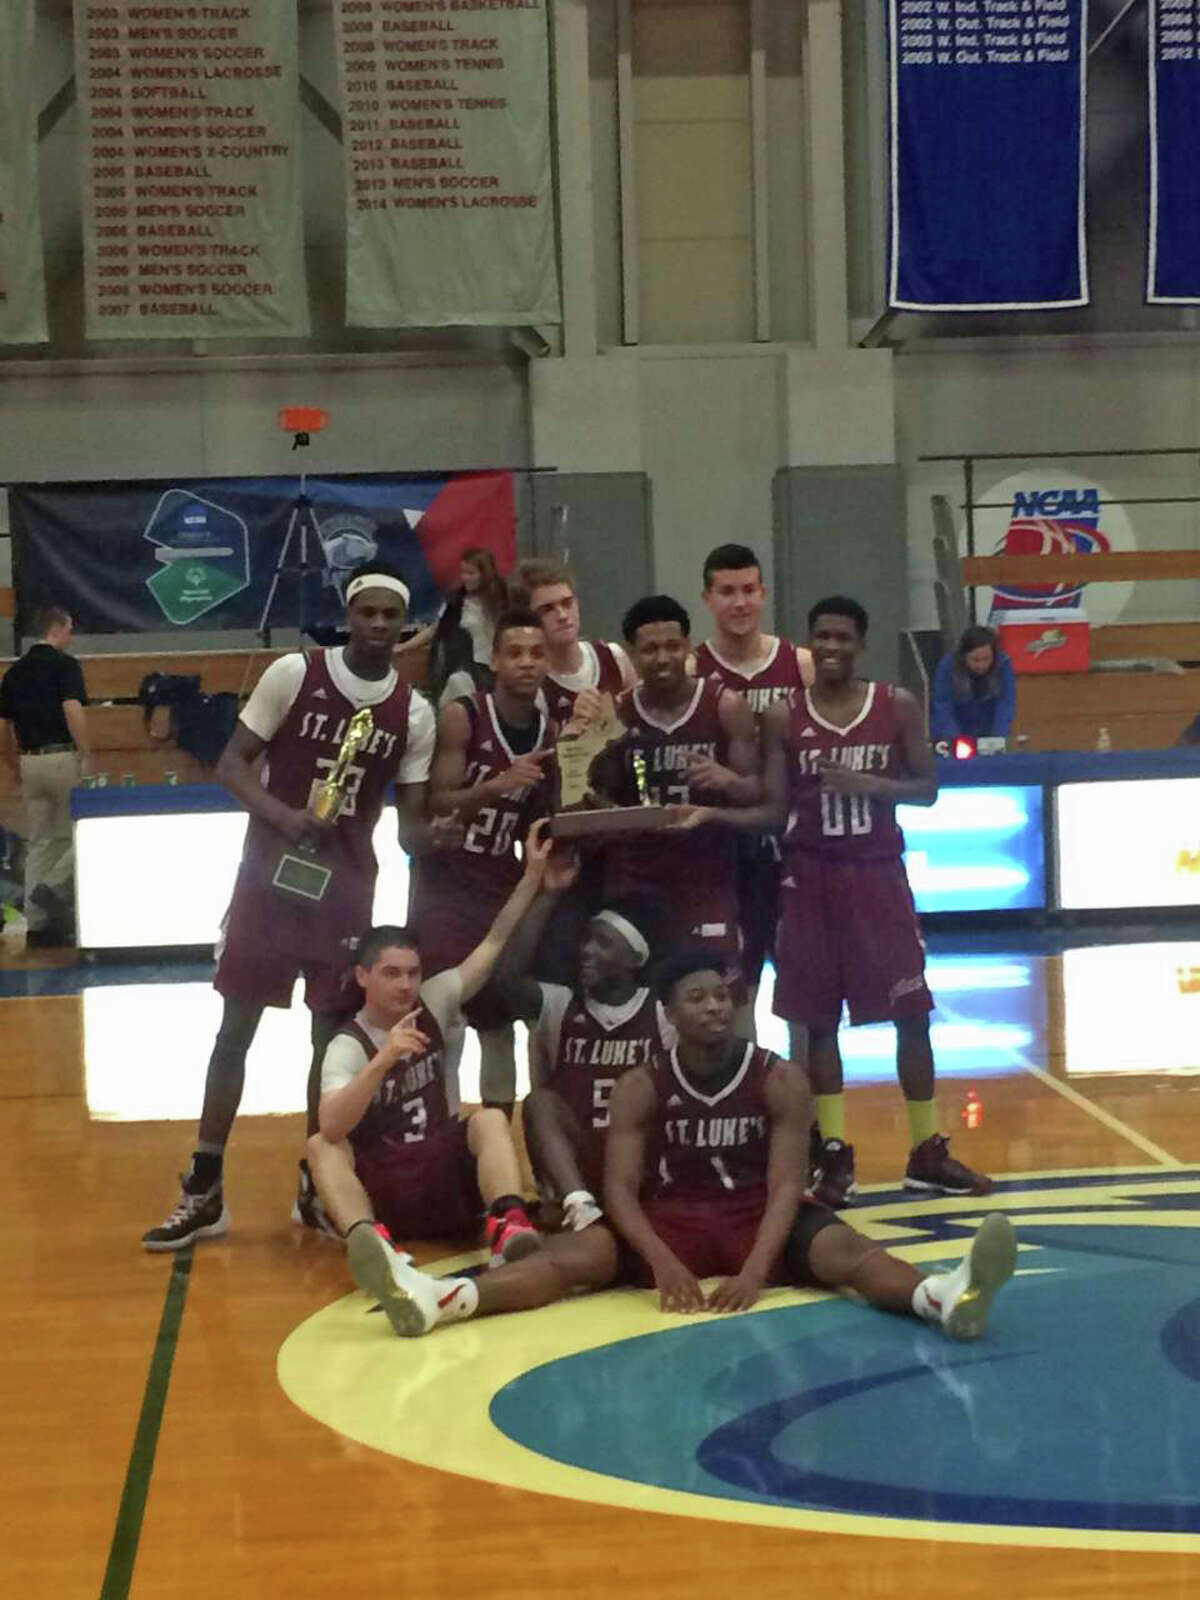 The St. Luke's basketball team poses after winning the NEPSAC Class C title over Pingree 74-68 in overtime.